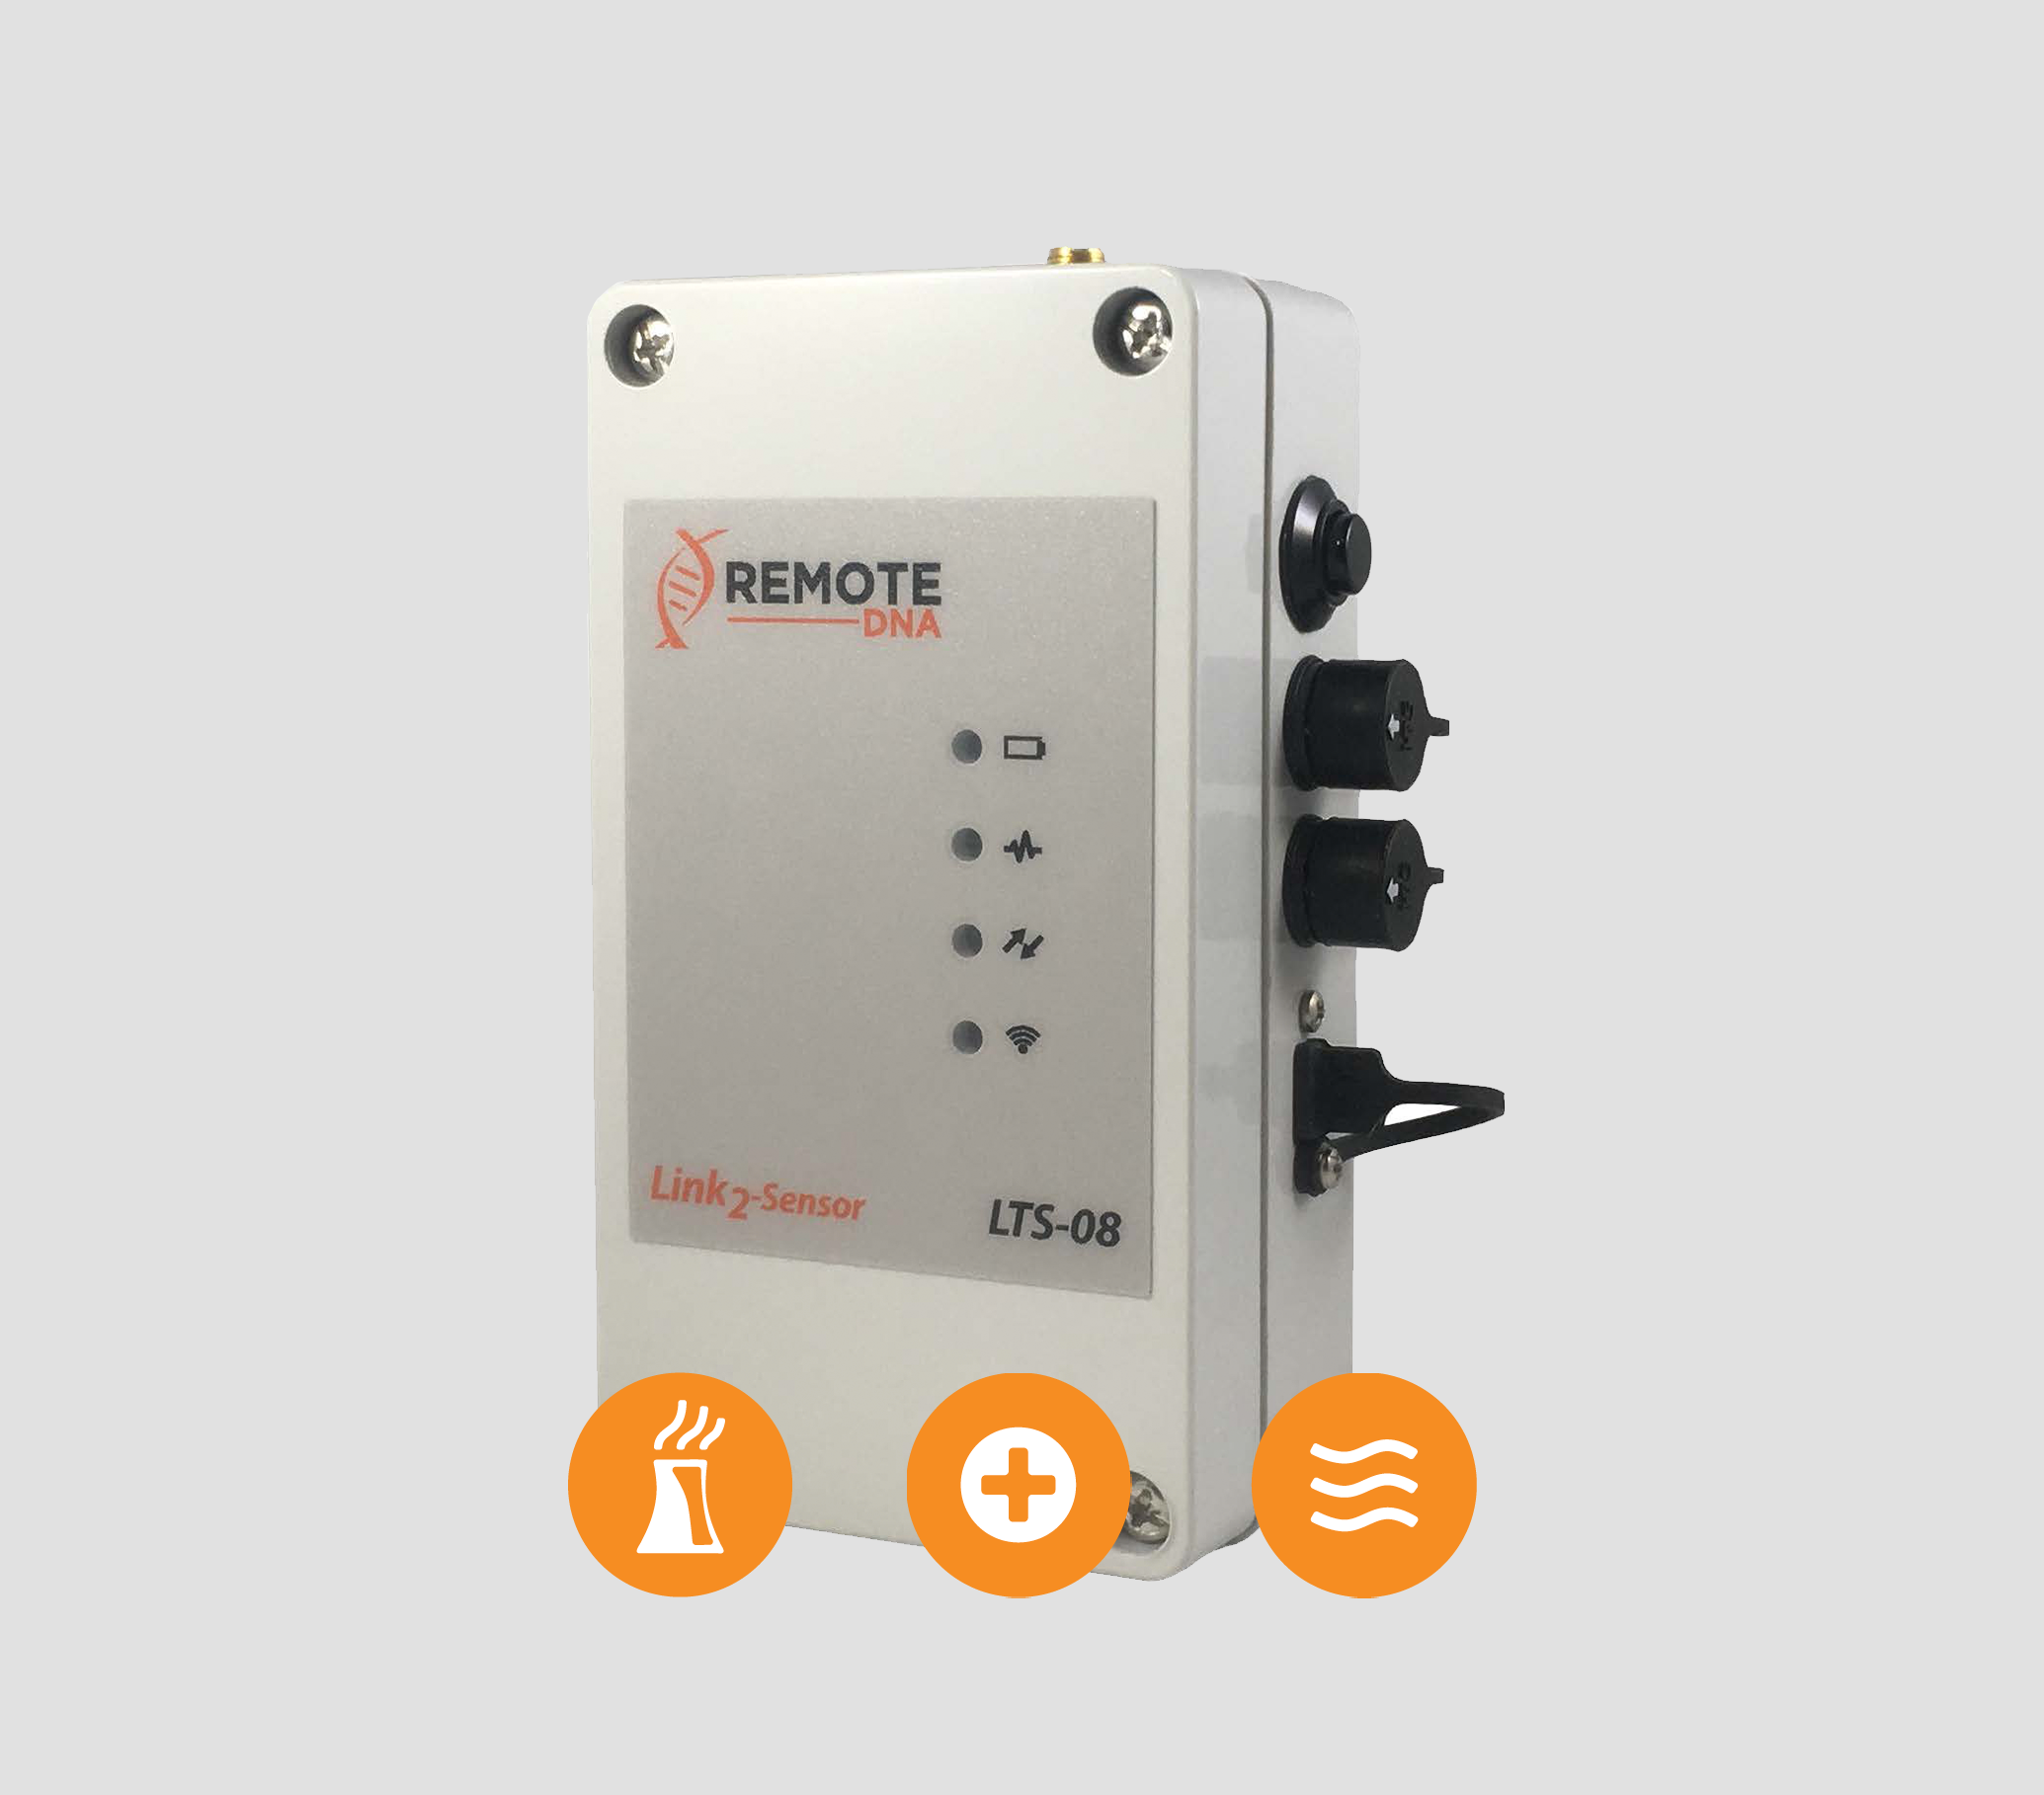 LTS-08 - The Link2-Sensor LTS-08 wireless transceiver provides reliable and simple to use wireless connectivity for instruments enabling data from remote field teams to be instantly transmitted…